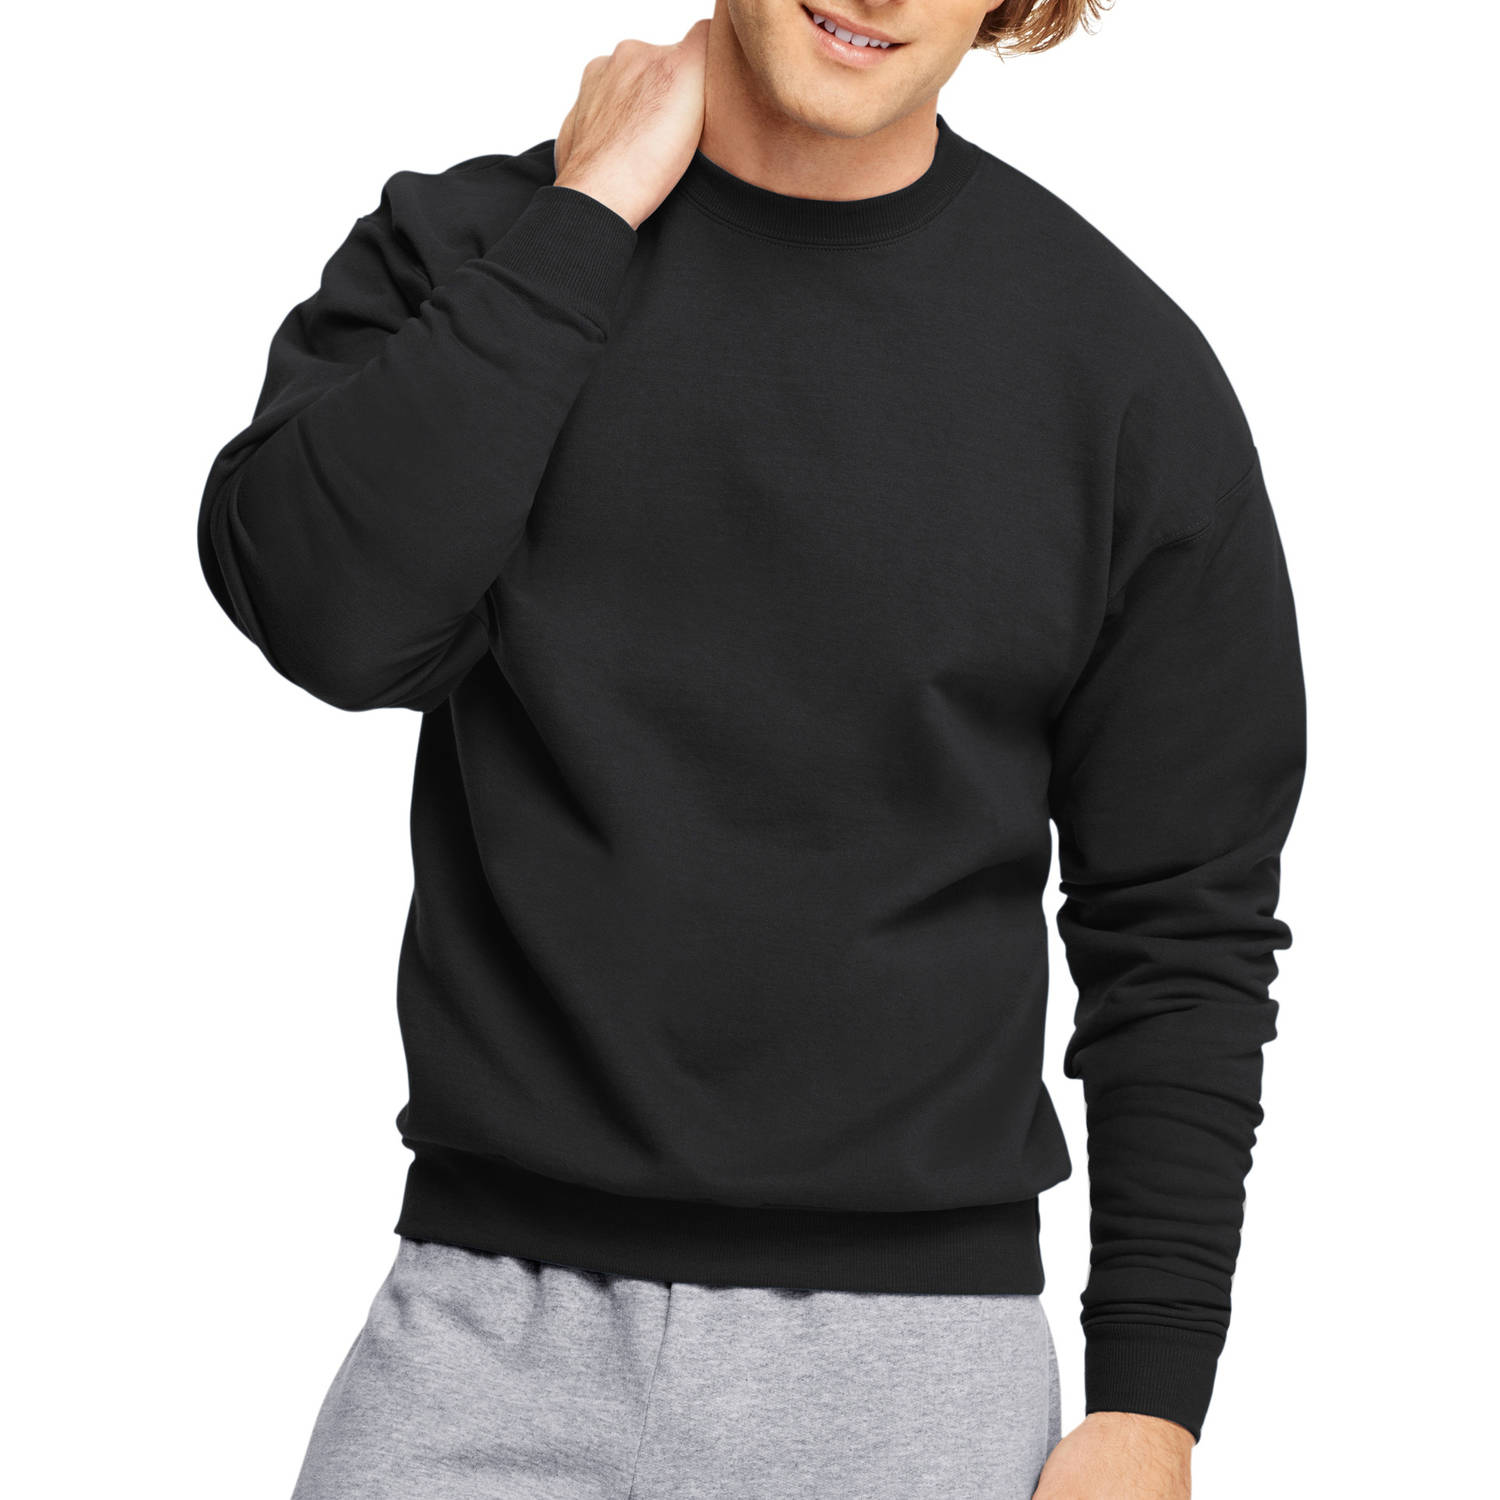 Hanes Big Men's EcoSmart Fleece Sweatshirt